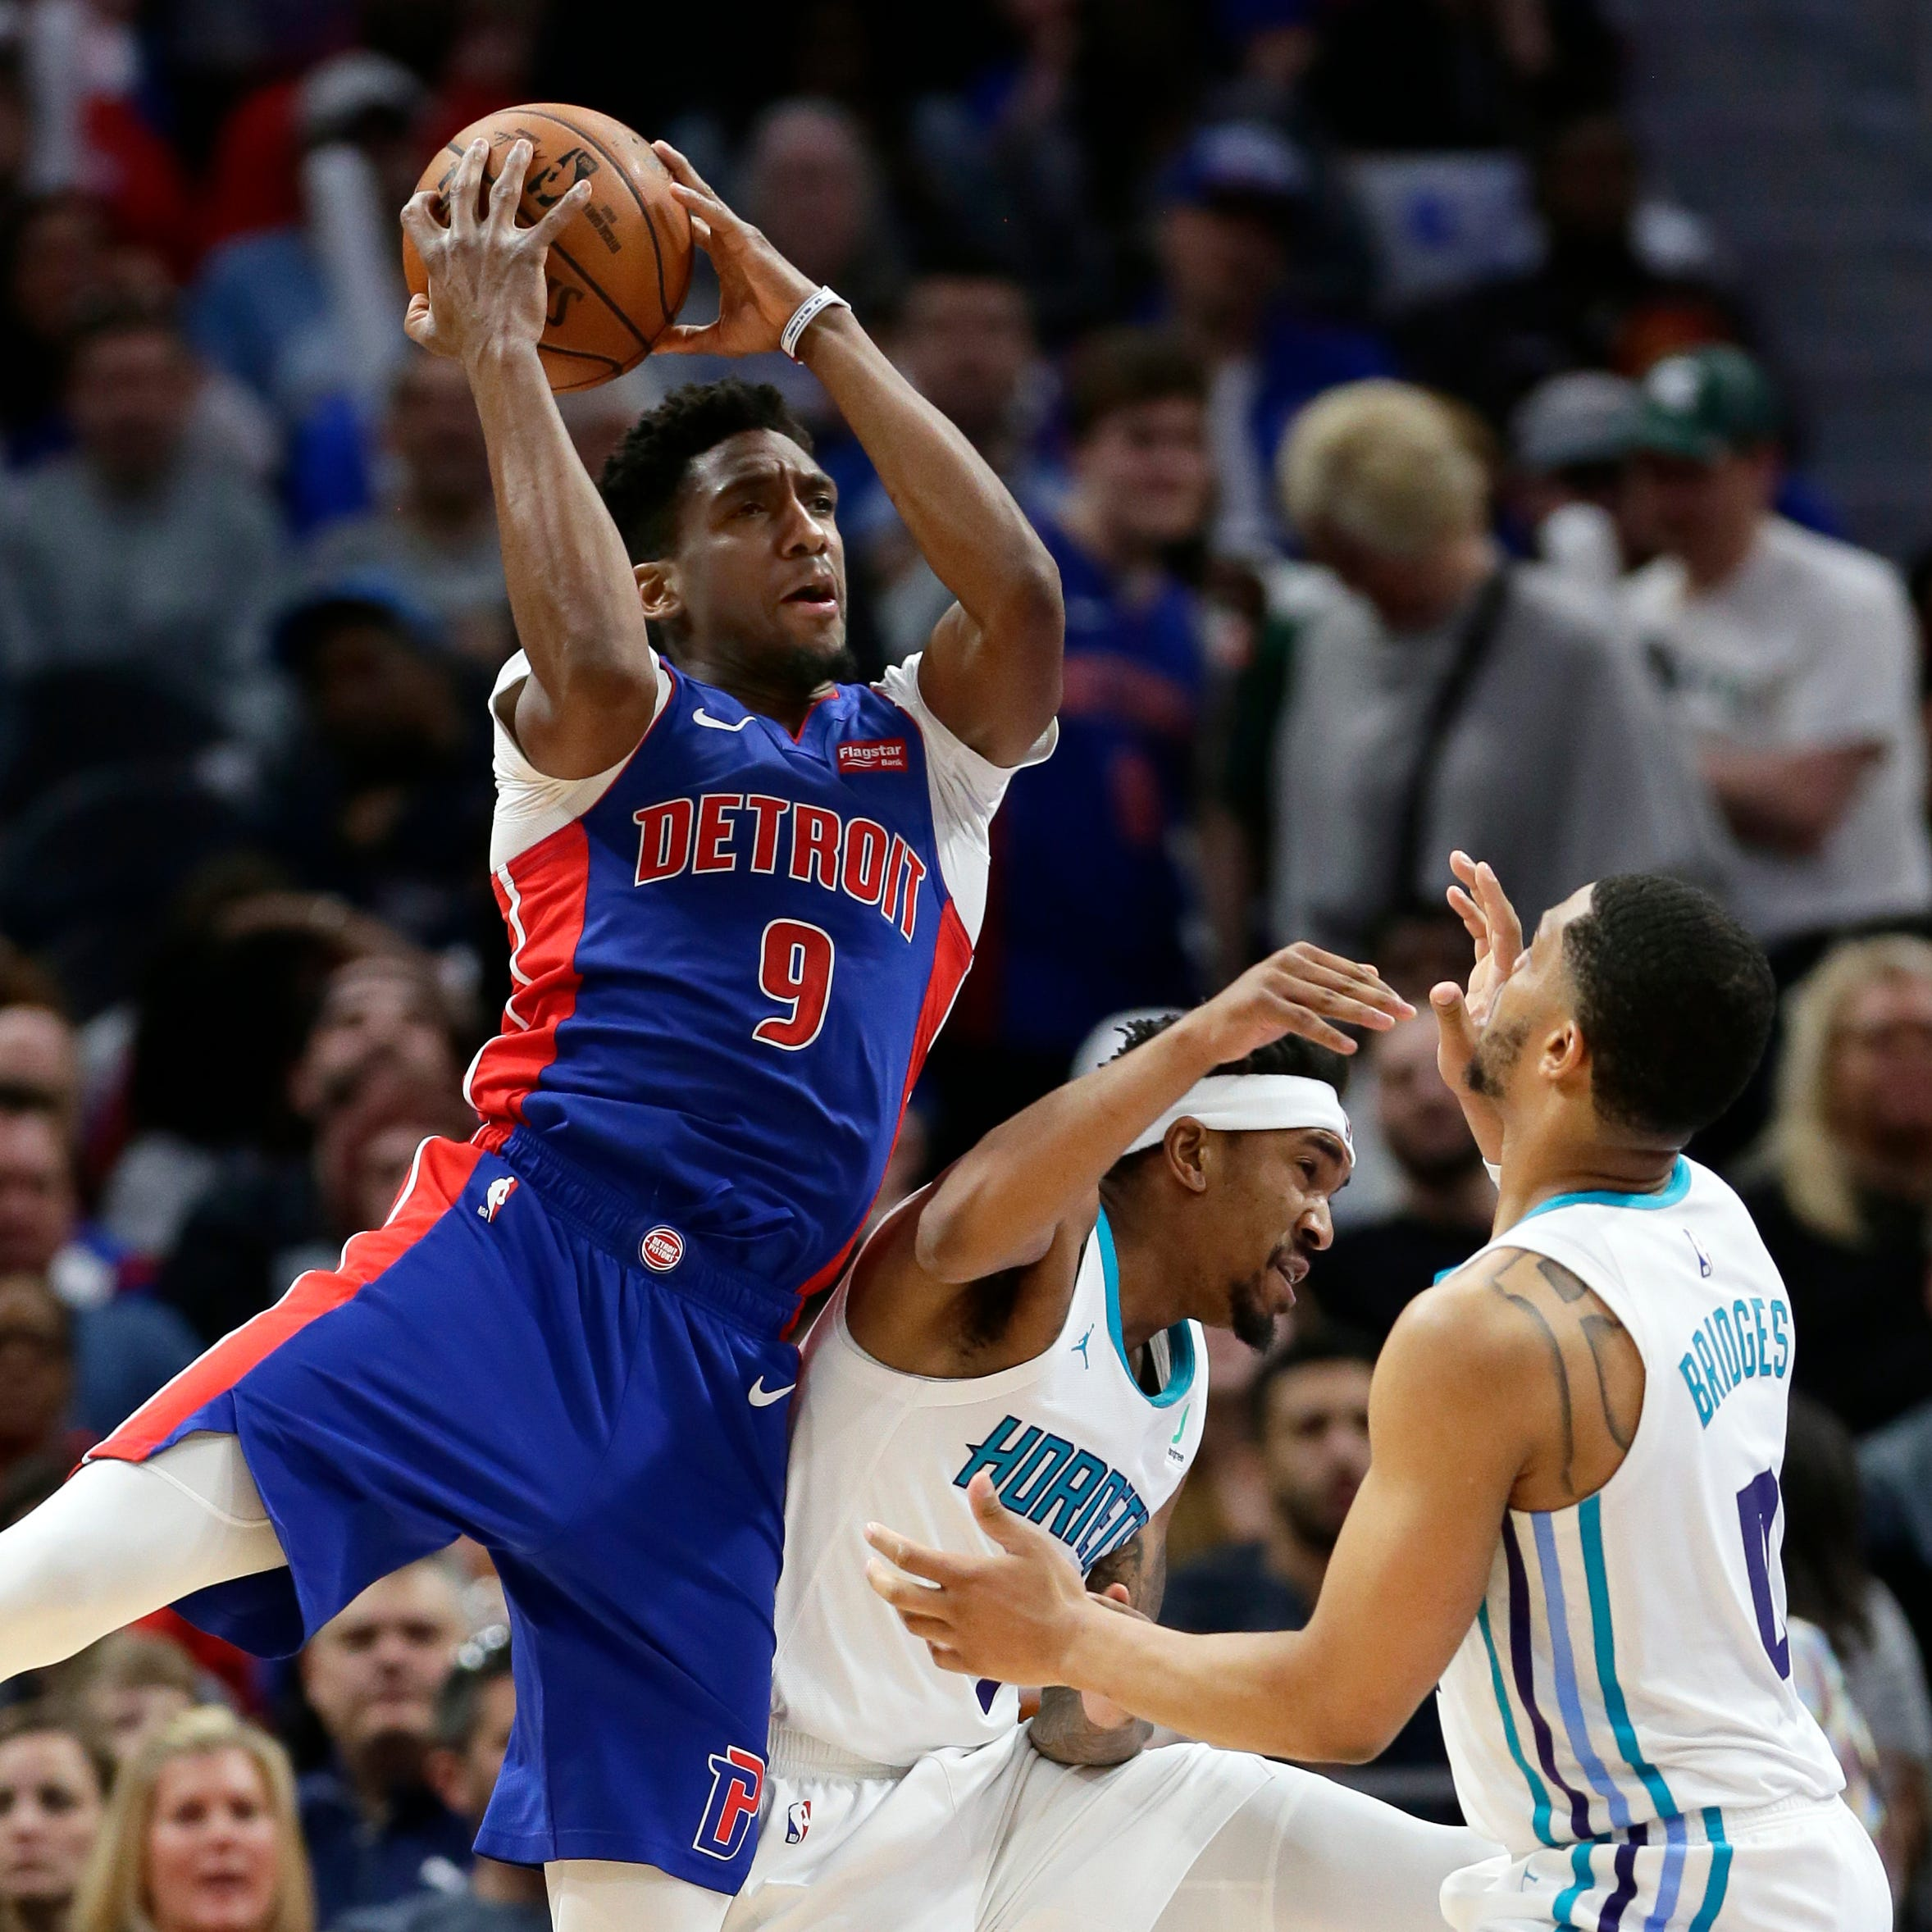 Detroit Pistons slumping, but path to playoff spot is simple: Just win